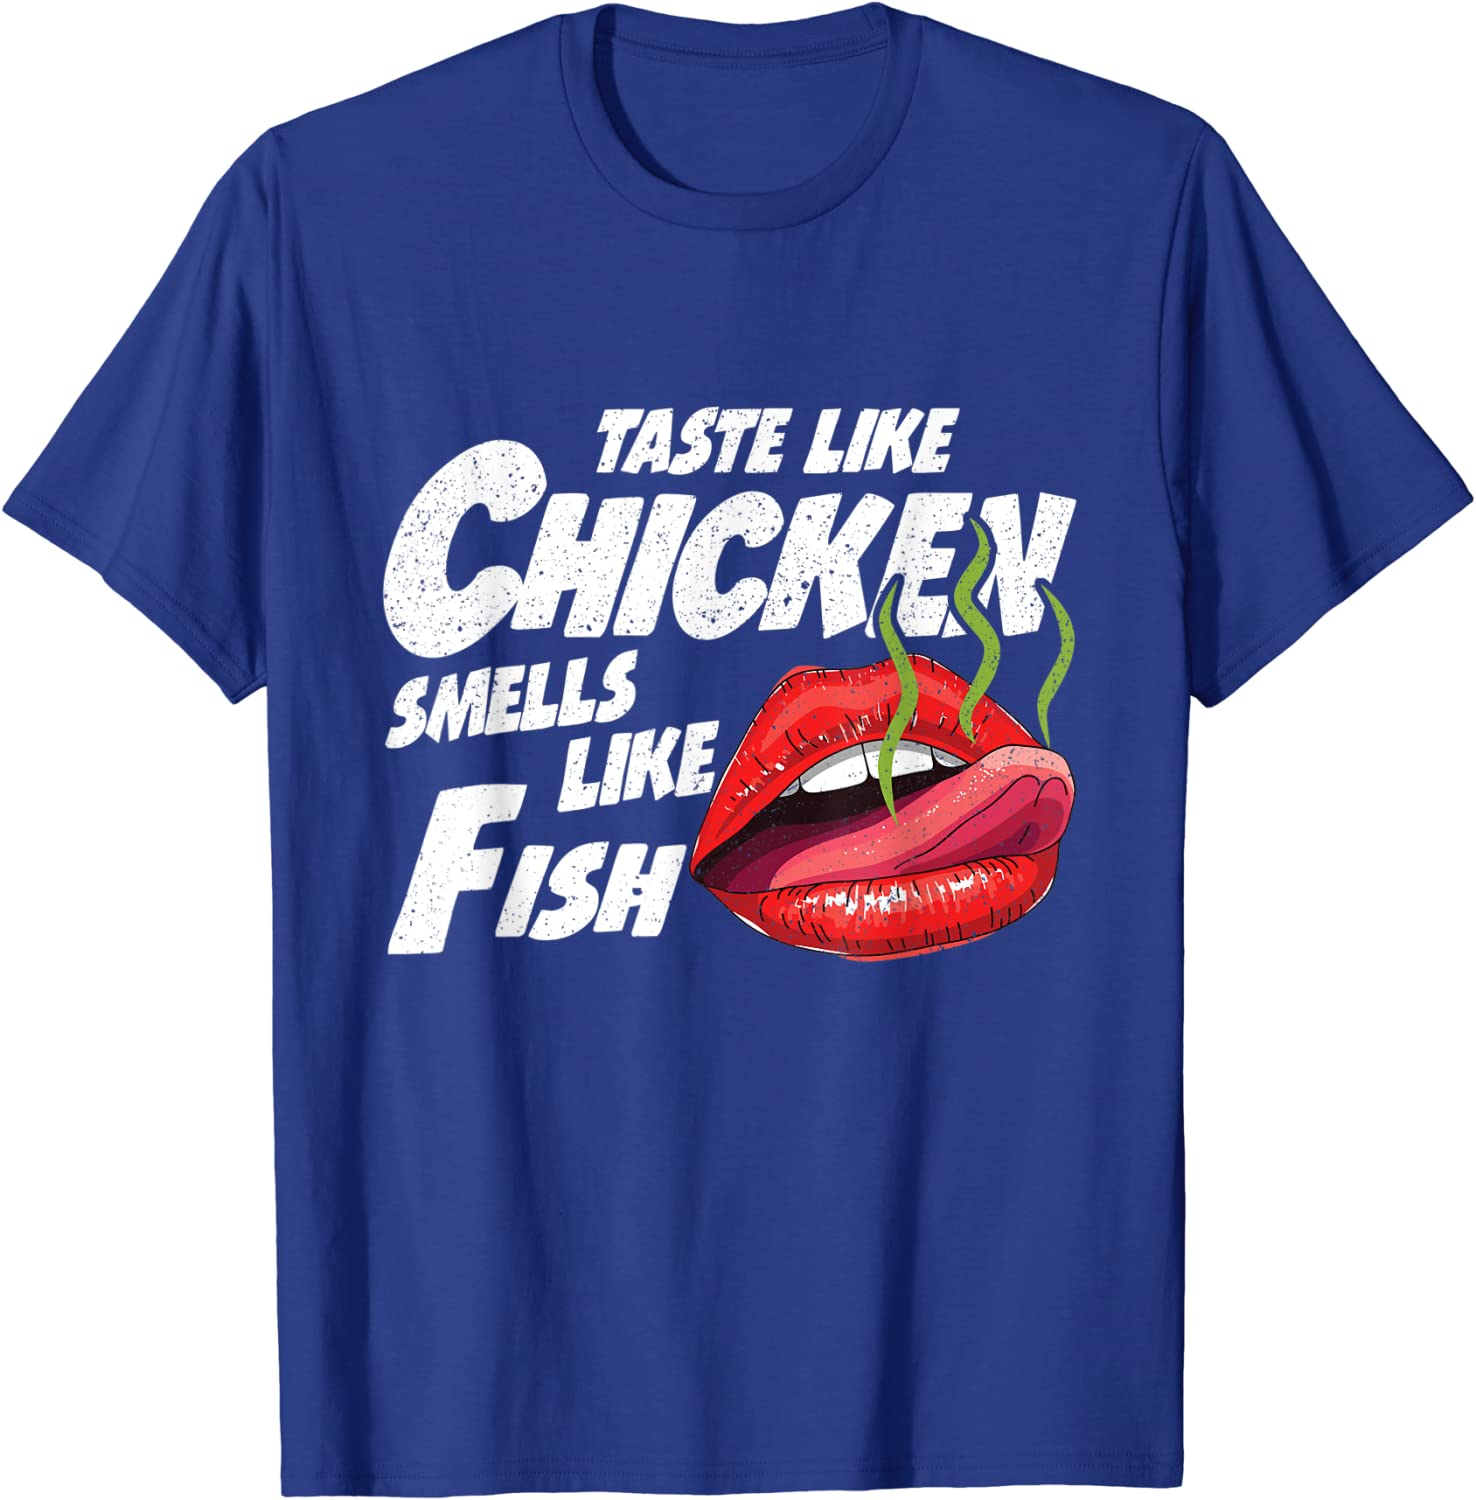 SMELLS LIKE FISH TASTES LIKE CHICKEN VERY VERY RUDE FUNNY T SHIRTS ALL SIZES